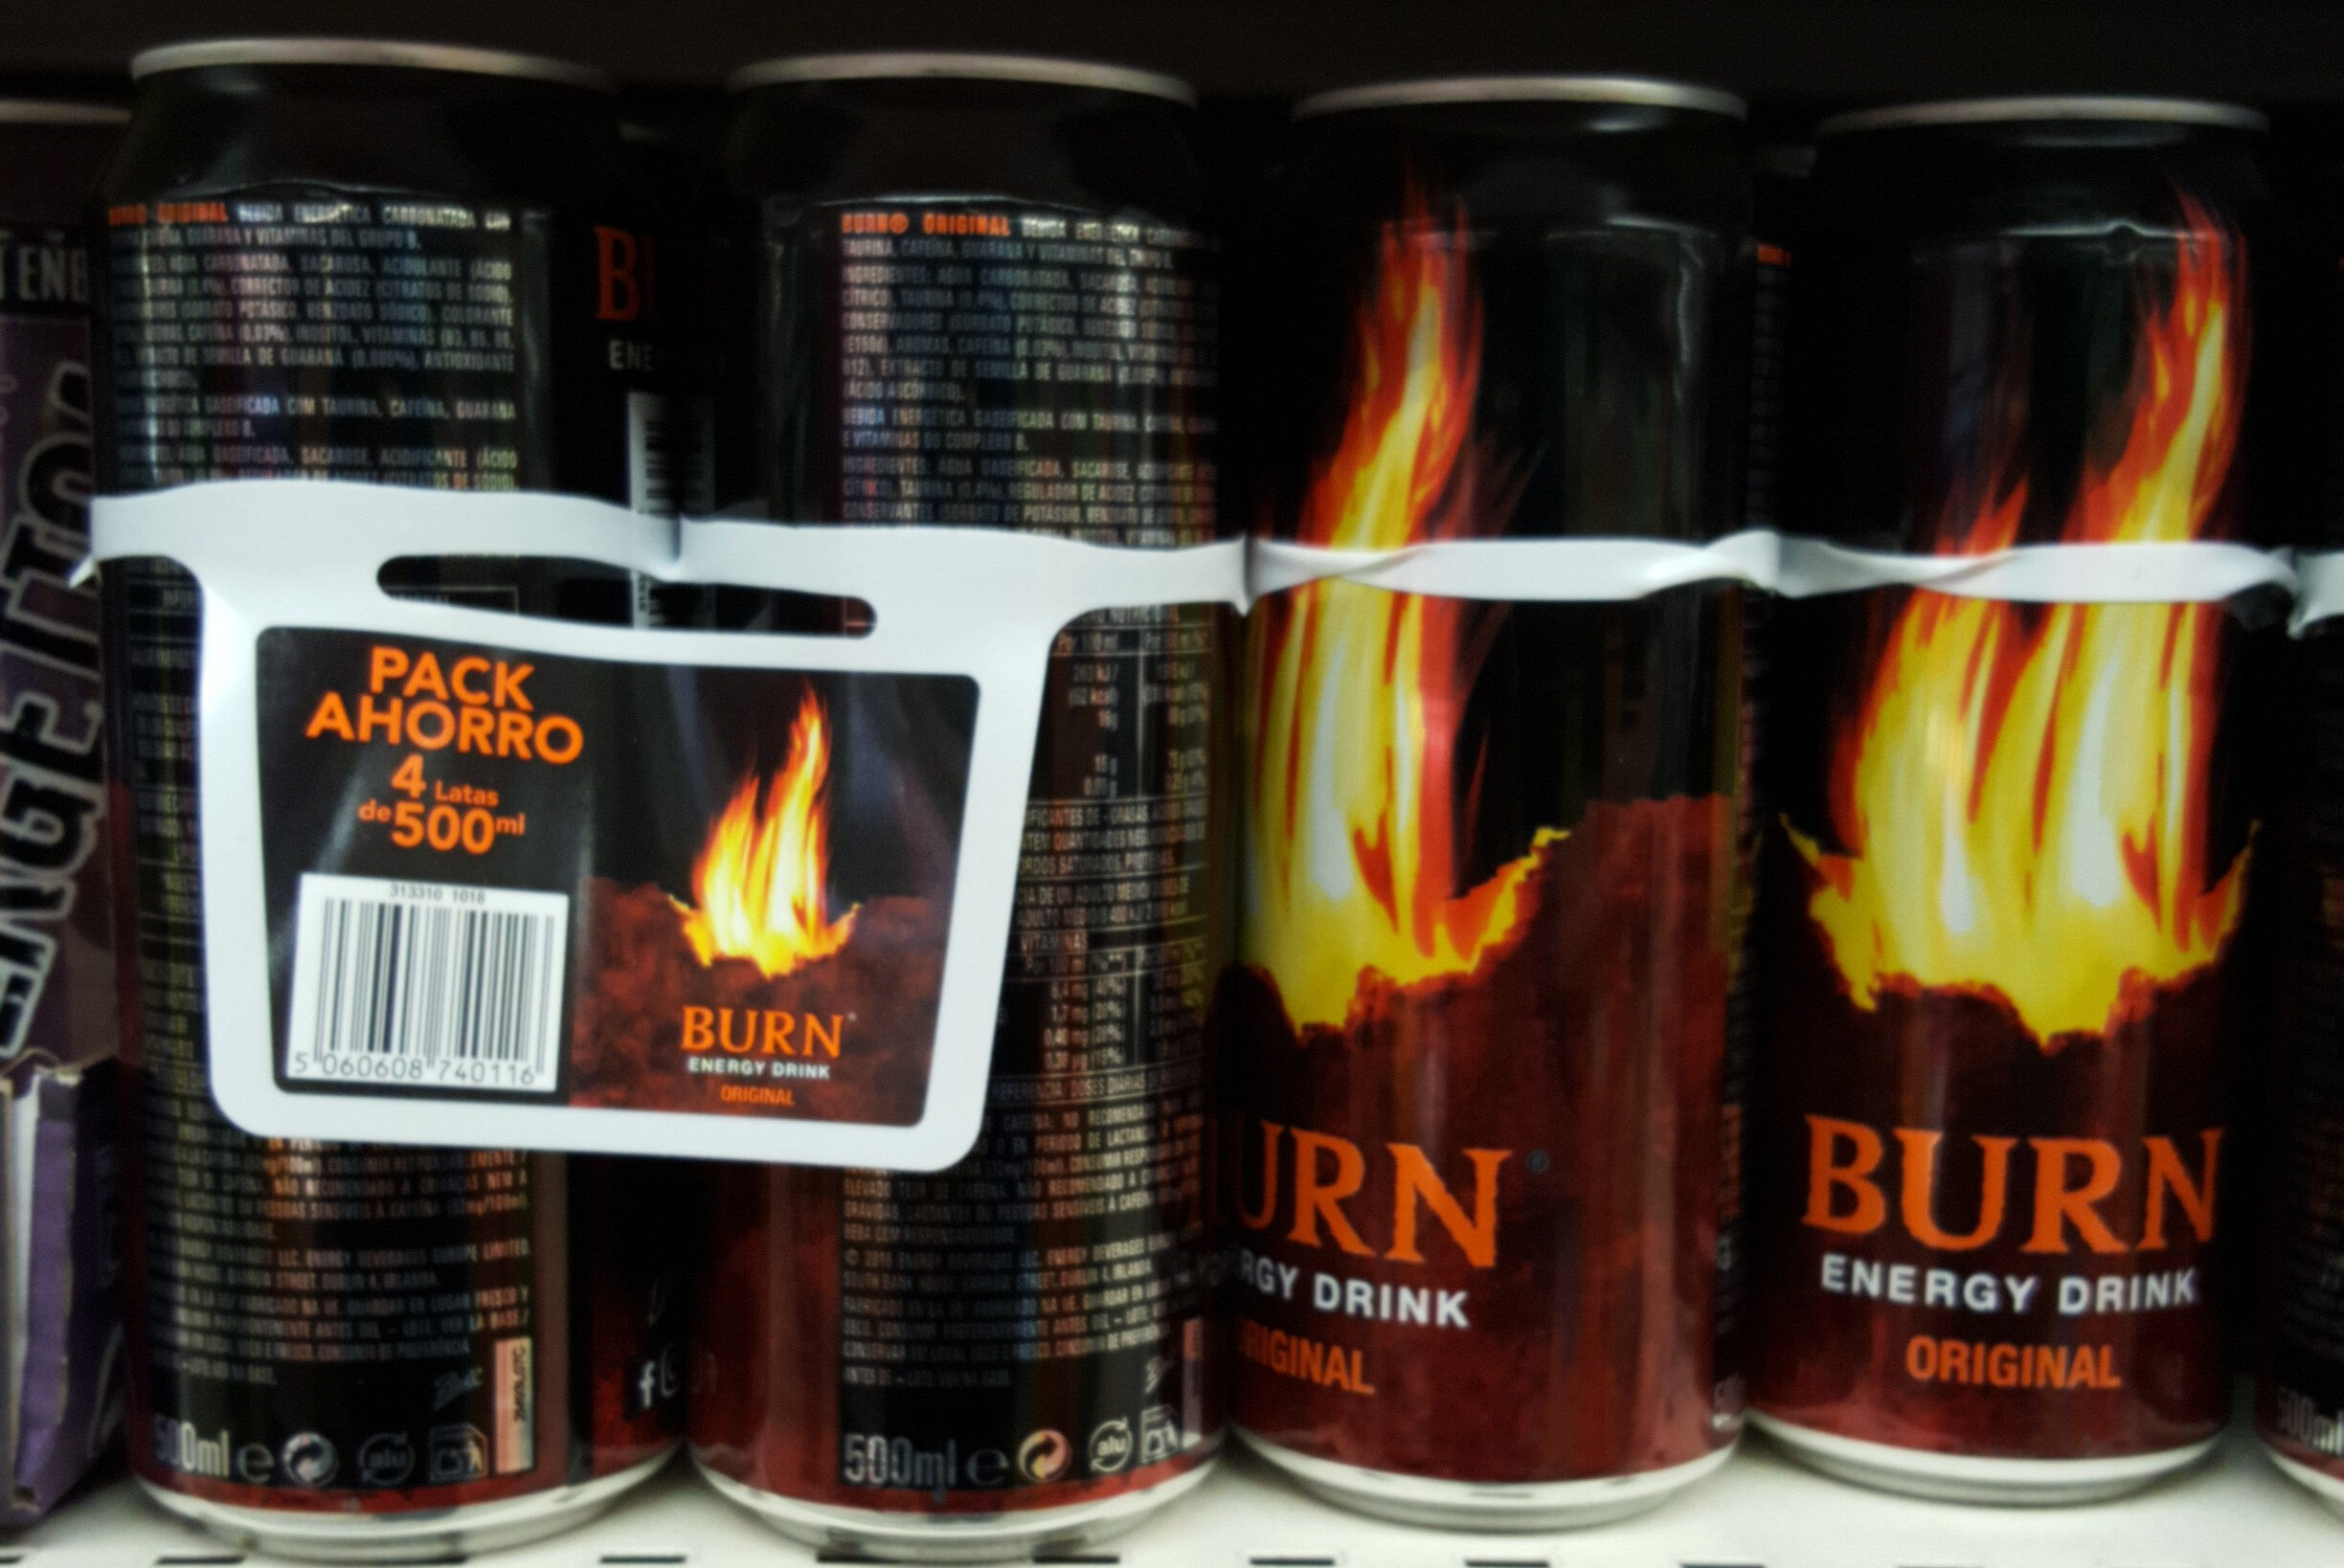 Burn lata pack 4 ahorro - Product - en